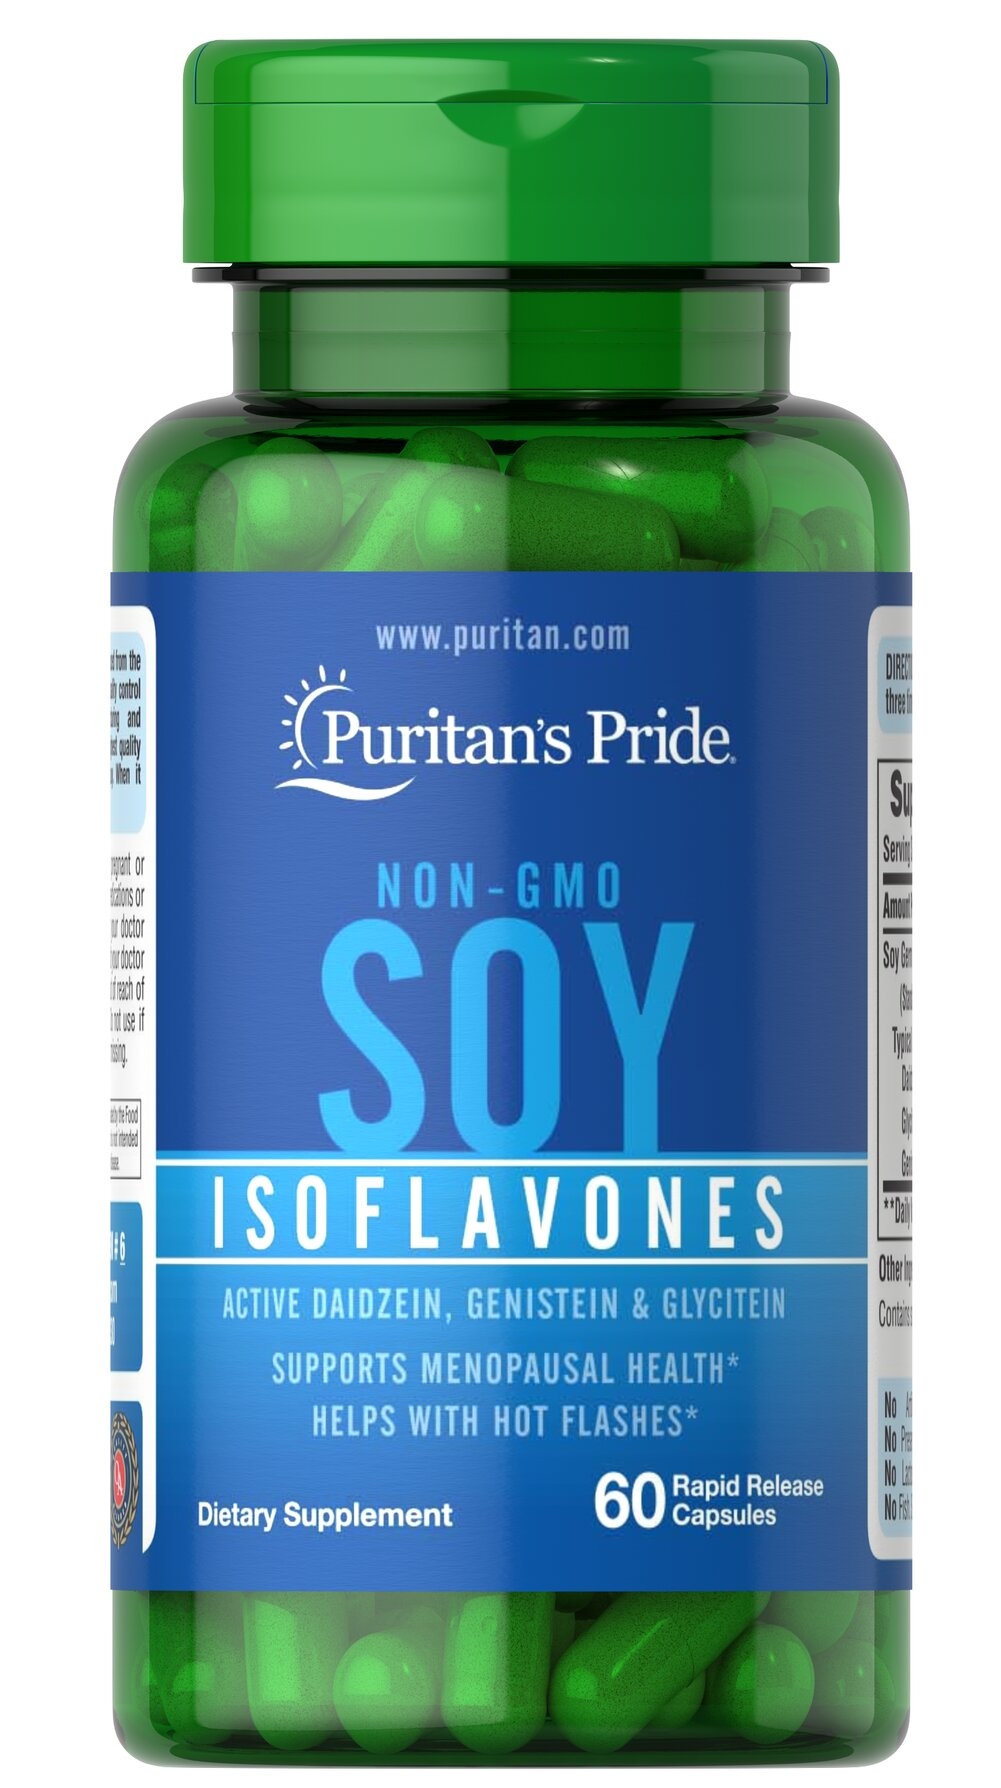 Non-GMO Soy Isoflavones 750 mg <p>Soy is a rich, plant-based source of phytoestrogens, which are naturally occurring compounds that help with hot flashes in menopausal women.**</p><p>Made from non-GMO certified soybeans, soy isoflavones provide holistic supplementation for a woman's midlife years. Our non-GMO soy isoflavones  include Daidzein, Genistein, and other soy isoflavones.</p> 60 Capsules 750 mg $10.79